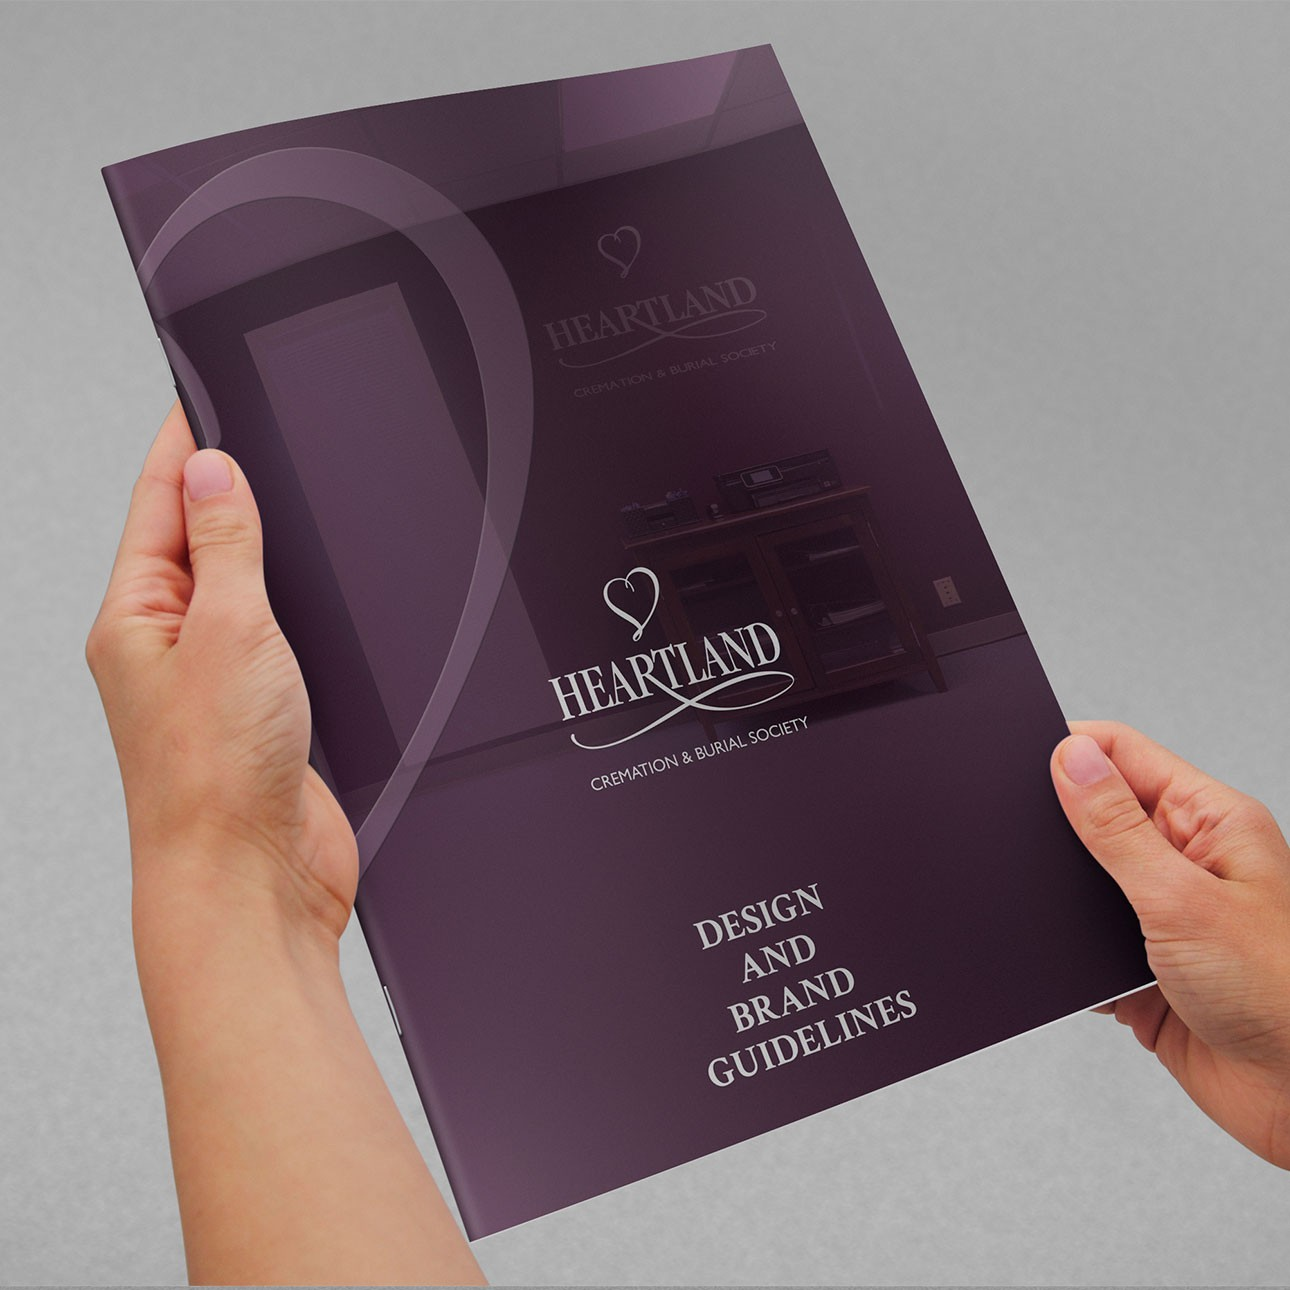 Heartland Cremation & Burial Society Brand Guide